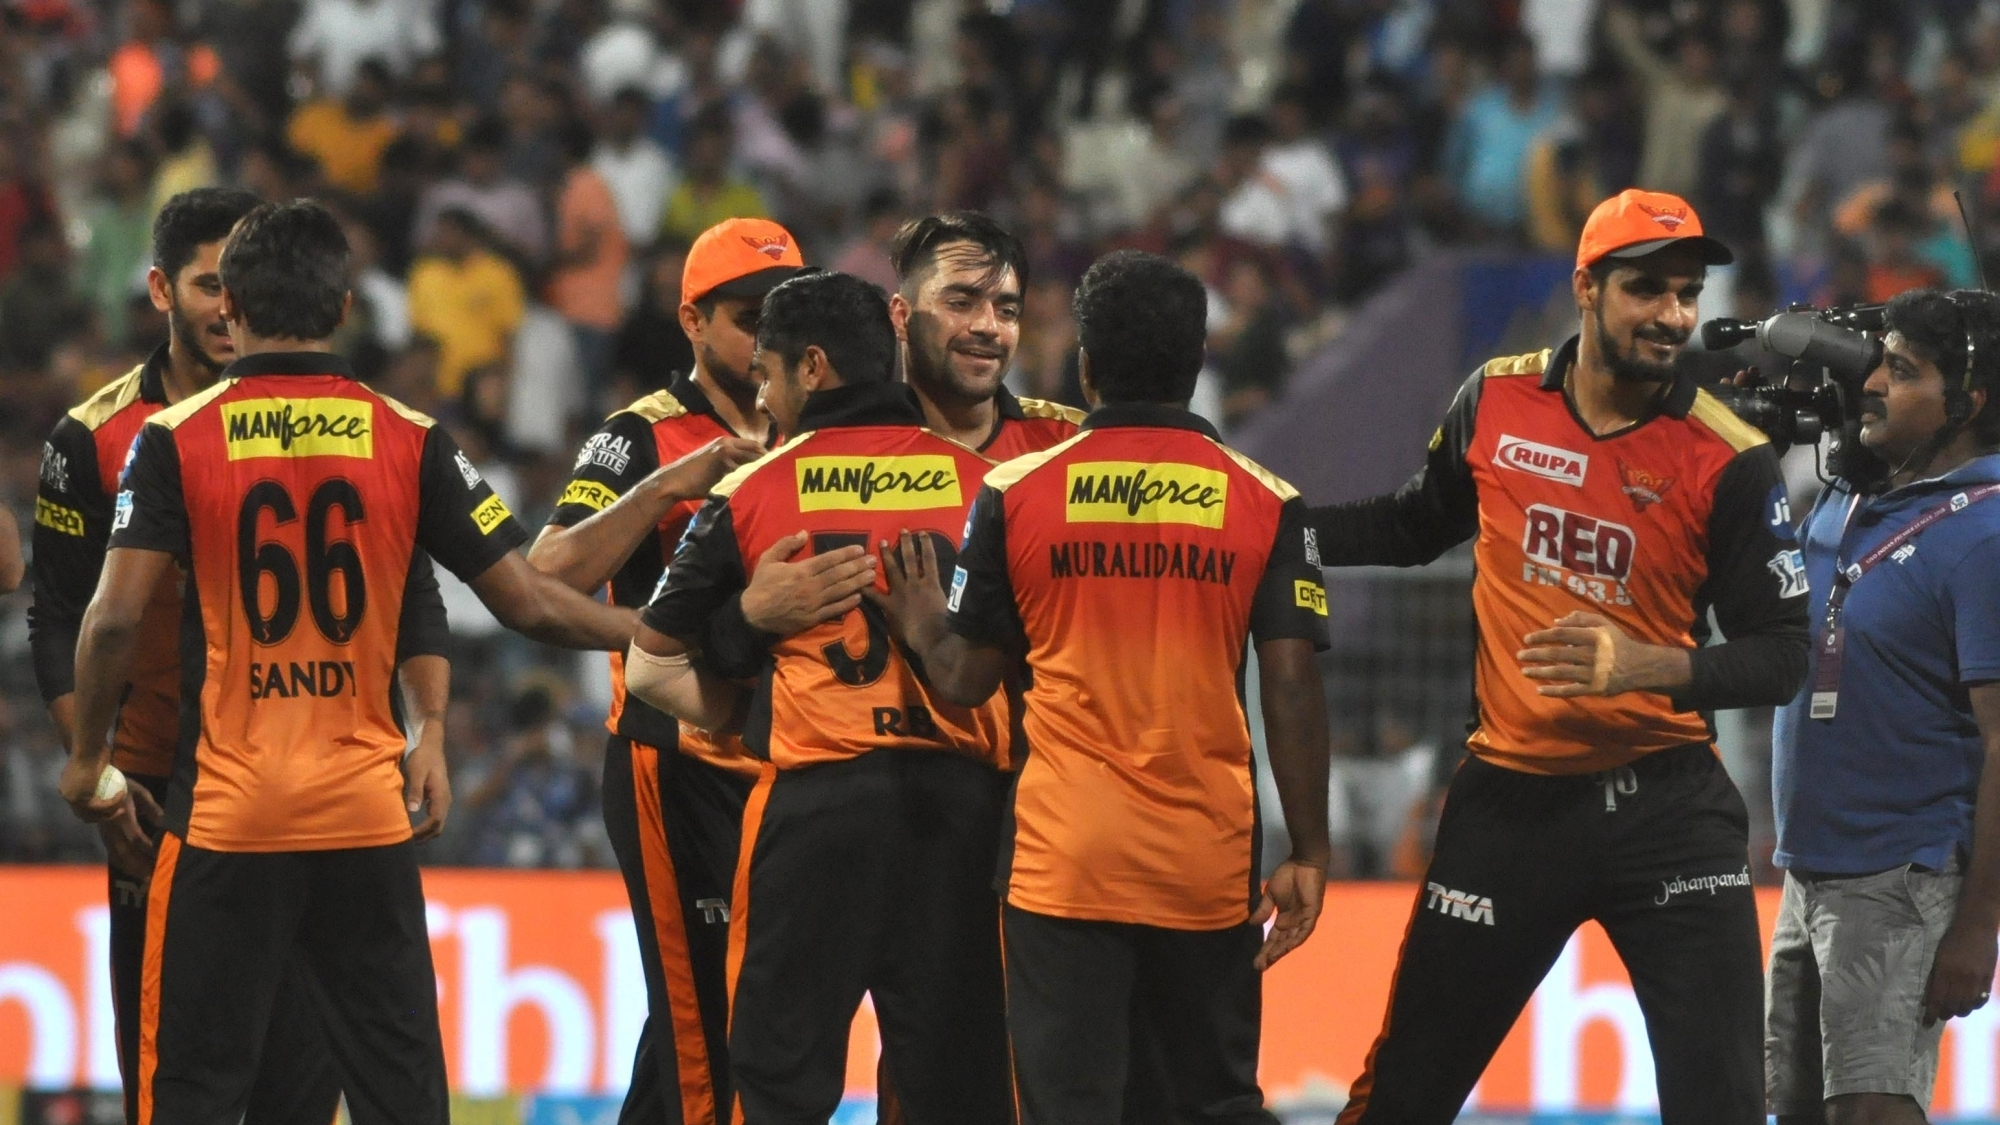 IPL 2018 : Sunrisers Hyderabad (SRH) - Statistical Review for IPL 11